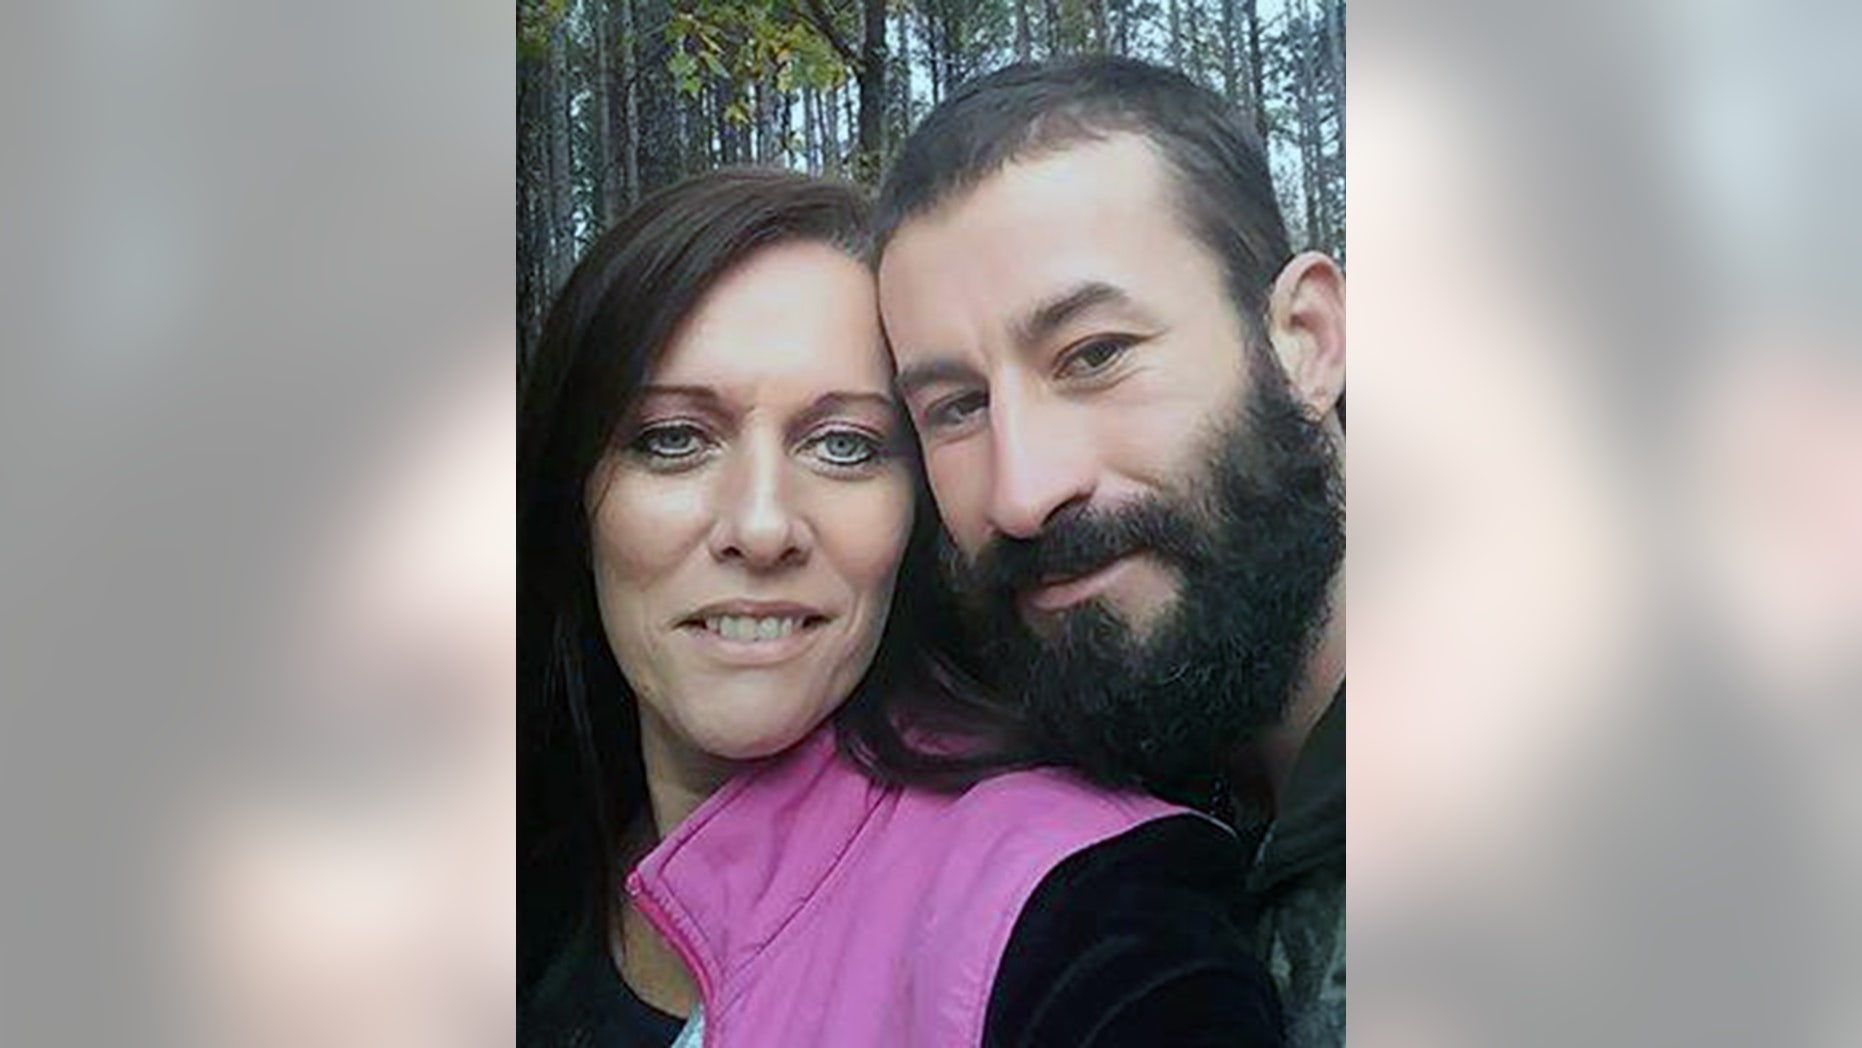 Missing Georgia couple found dead in apparent murder-suicide, police